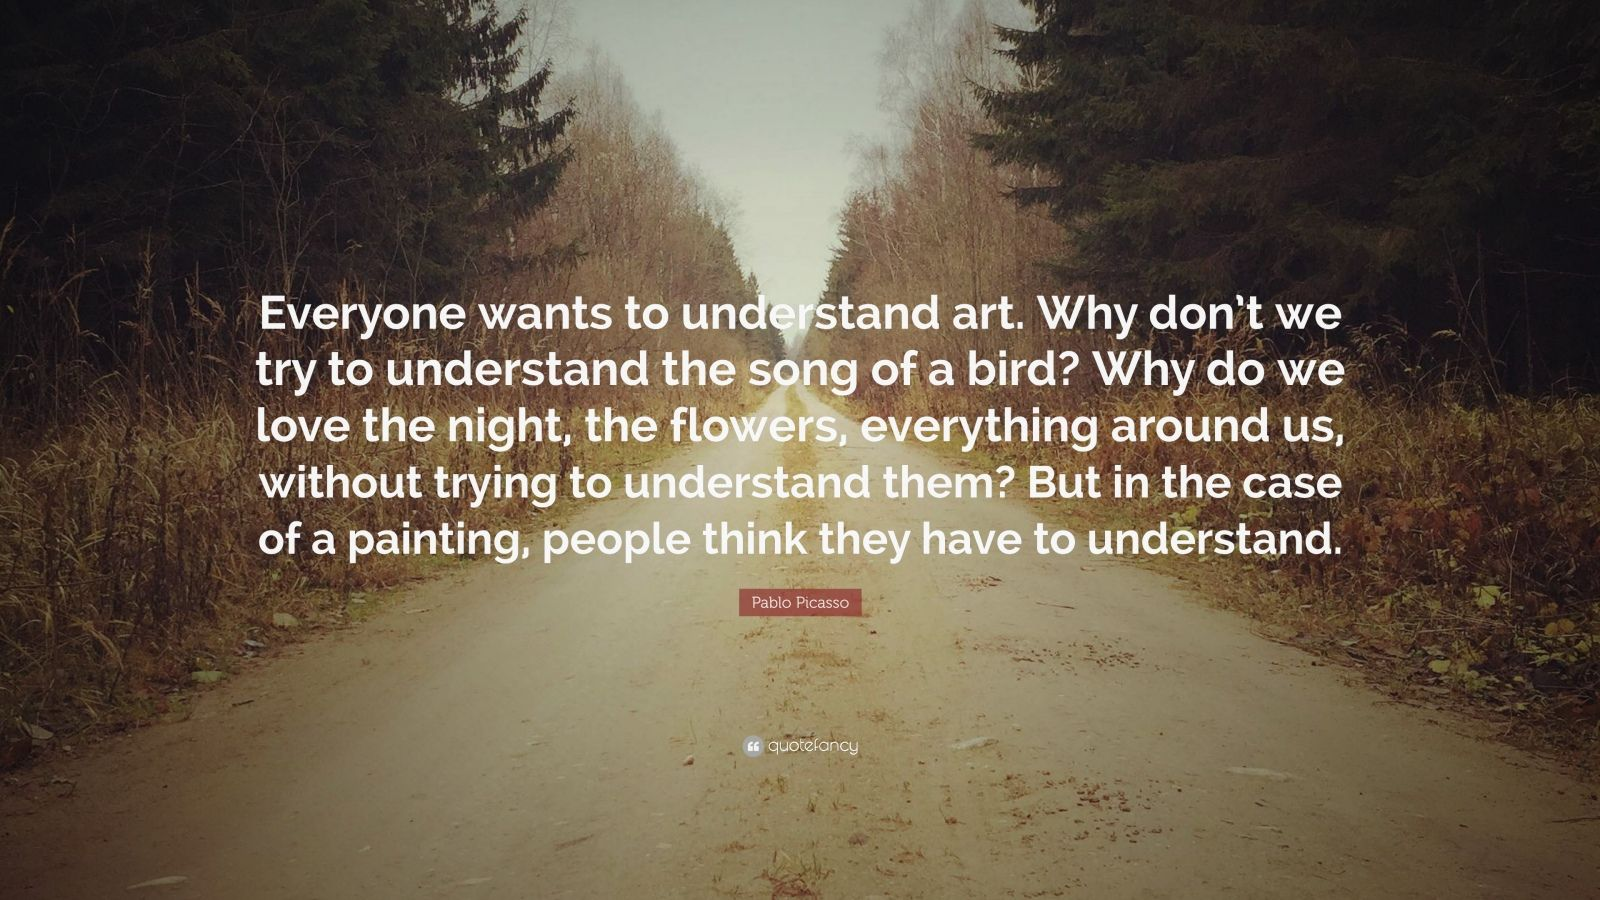 "Pablo Picasso Quote: ""Everyone wants to understand art. Why don't we try to understand the song of a bird? Why do we love the night, the flowers, everything around us, without trying to understand them? But in the case of a painting, people think they have to understand."""